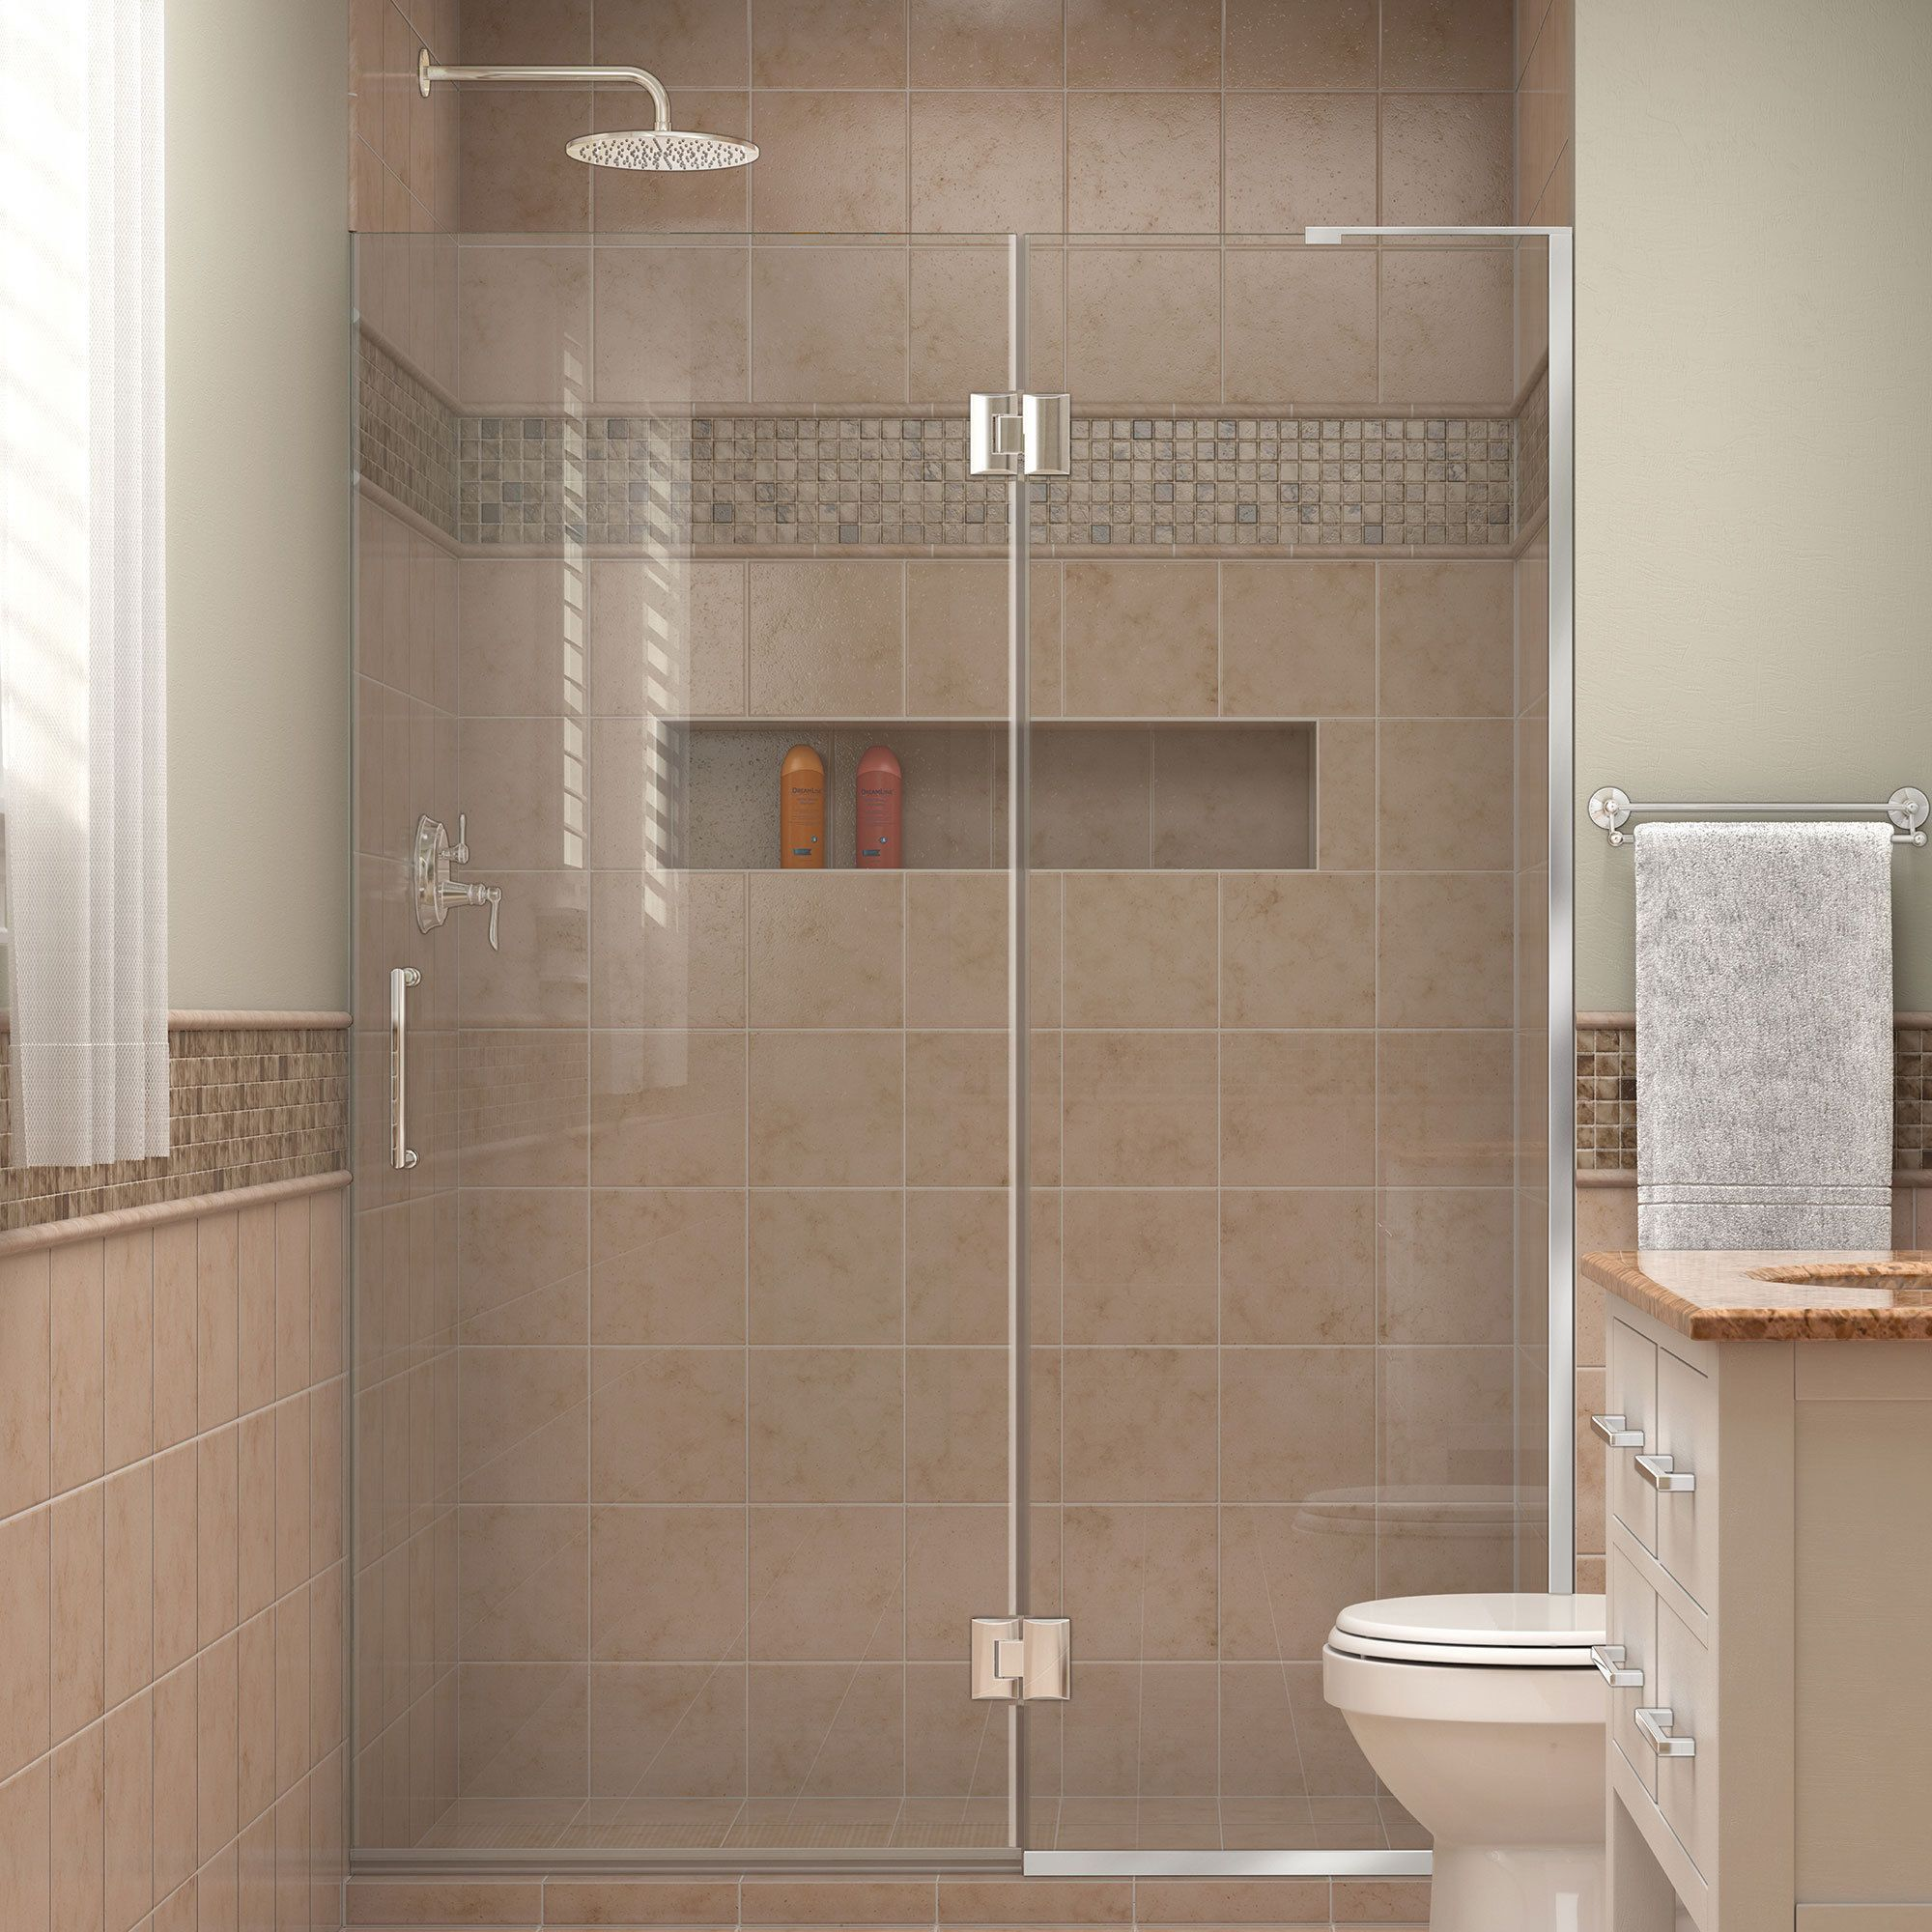 DreamLine Unidoor-X 50 in. W x 72 in. H Hinged Shower Door (Chrome ...